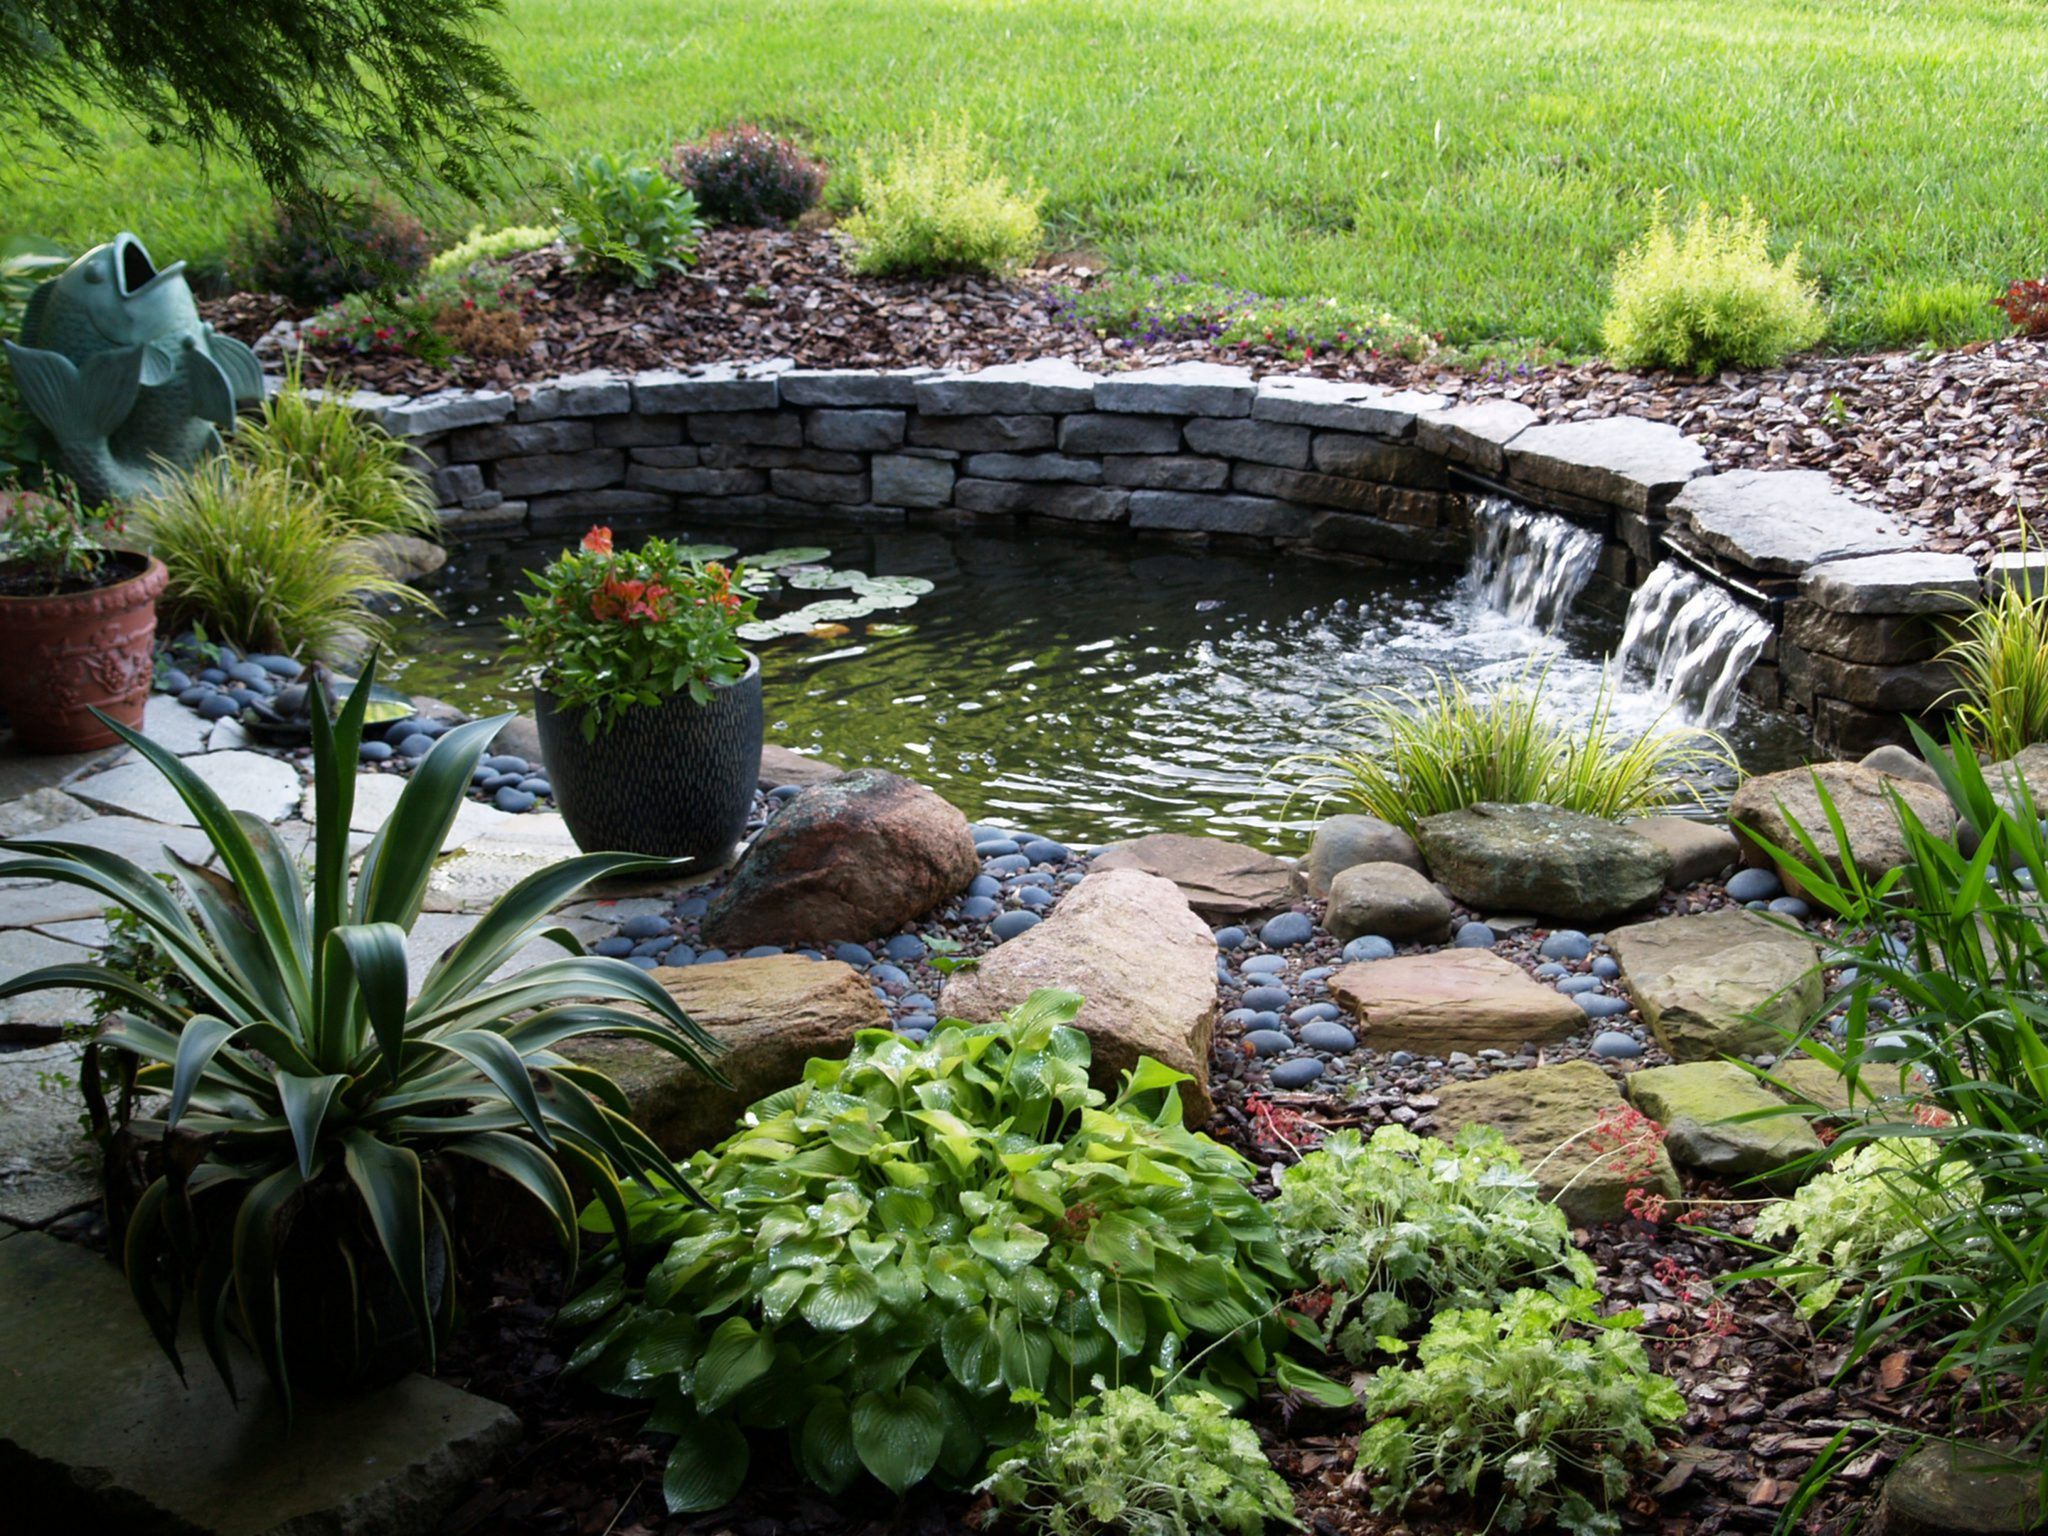 10 Japanese Style Fish Pond Ideas In Your Home To Be As Impressive